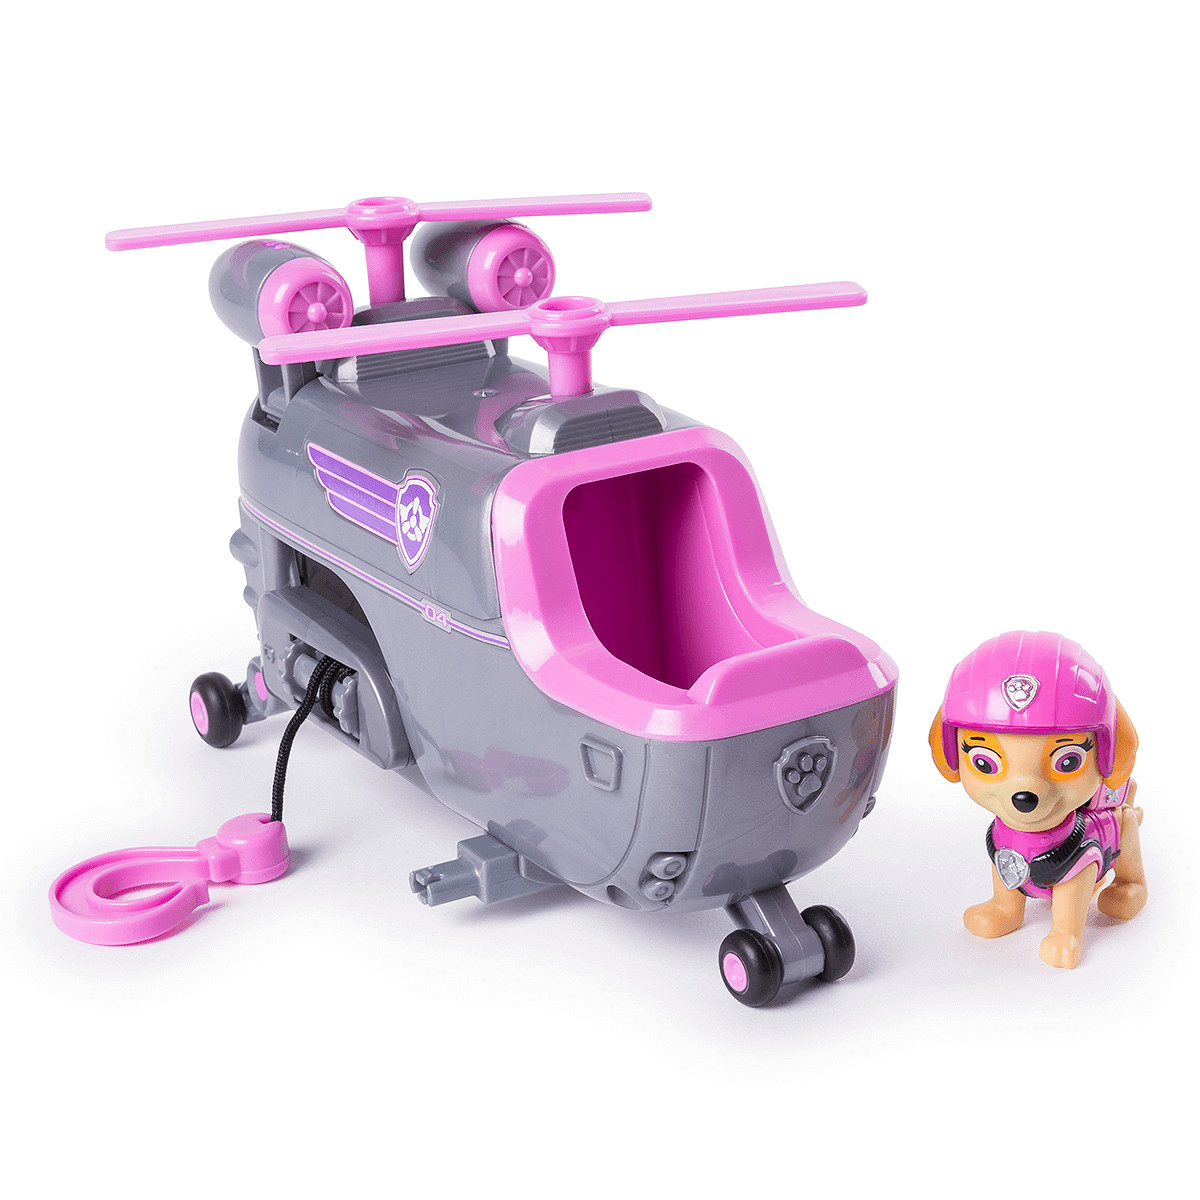 Paw Patrol Ultimate Rescue Vehicle With Pup - Skye from Early Learning Center